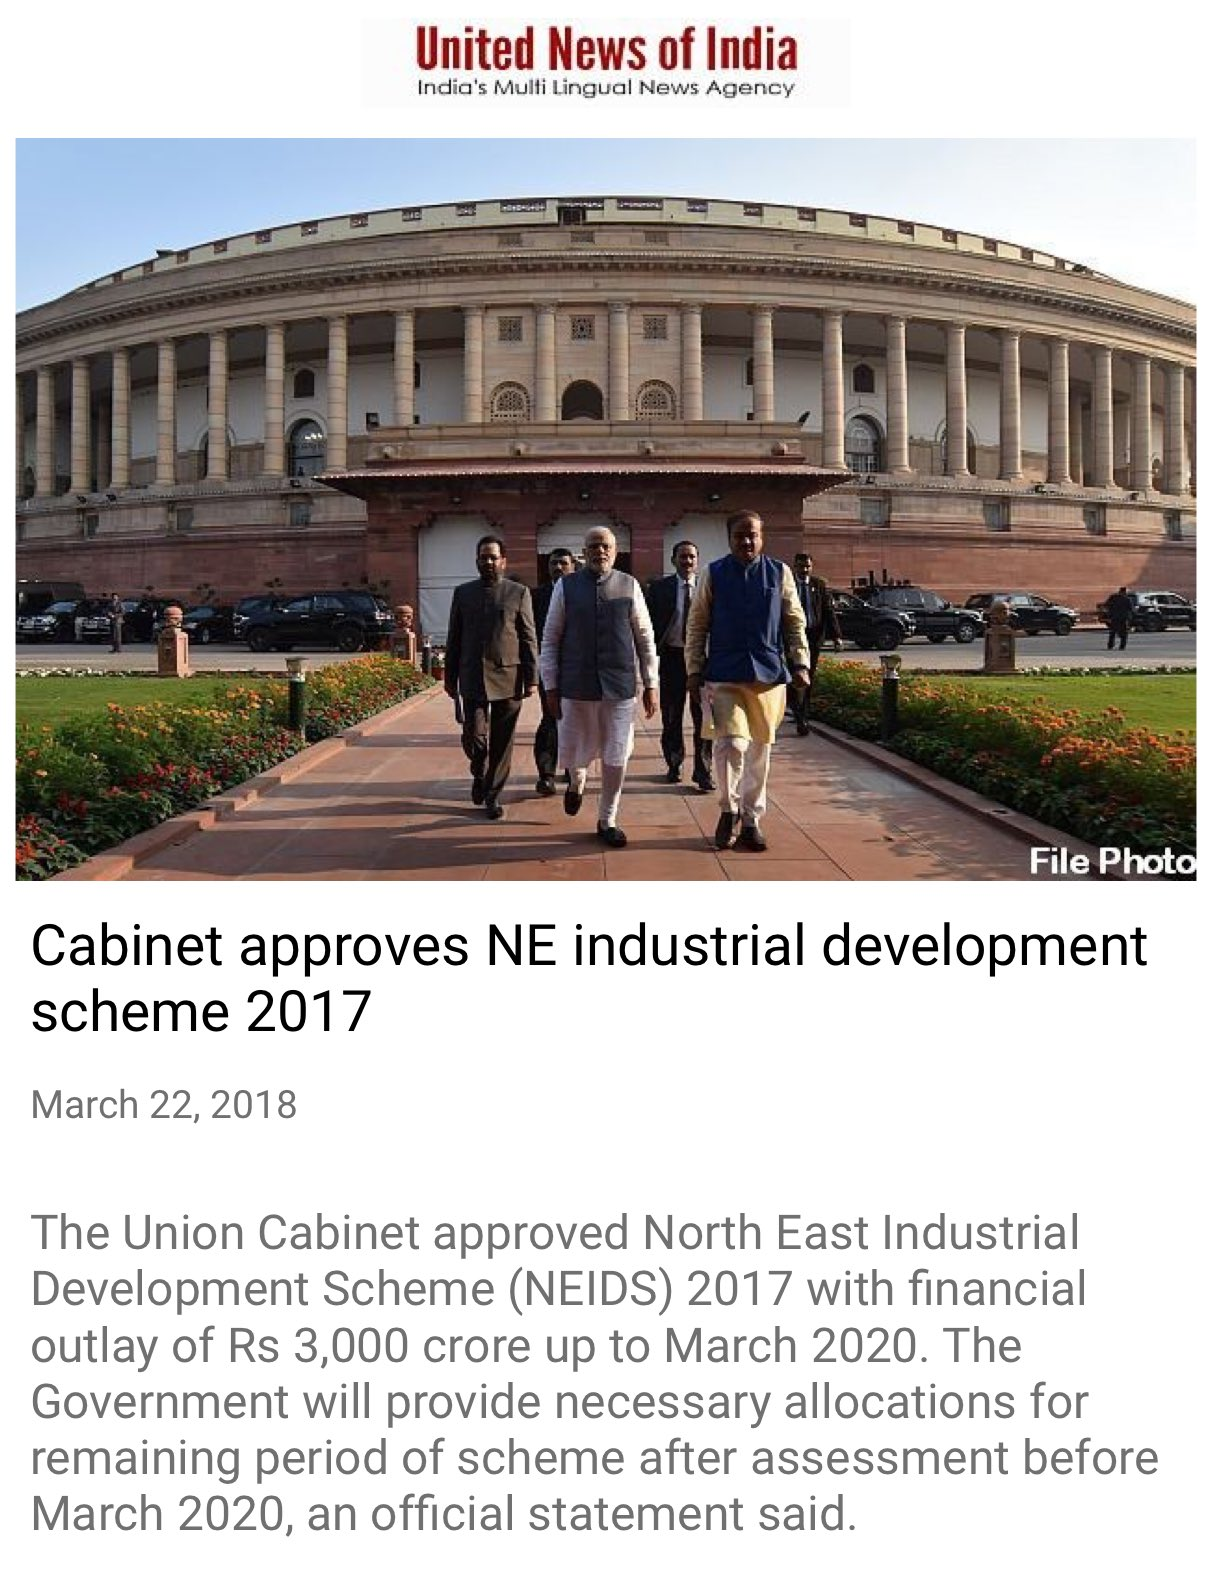 Cabinet approves NE industrial development scheme.  https://t.co/JQEbETz4Wd  via NMApp https://t.co/a2KZx0ir20